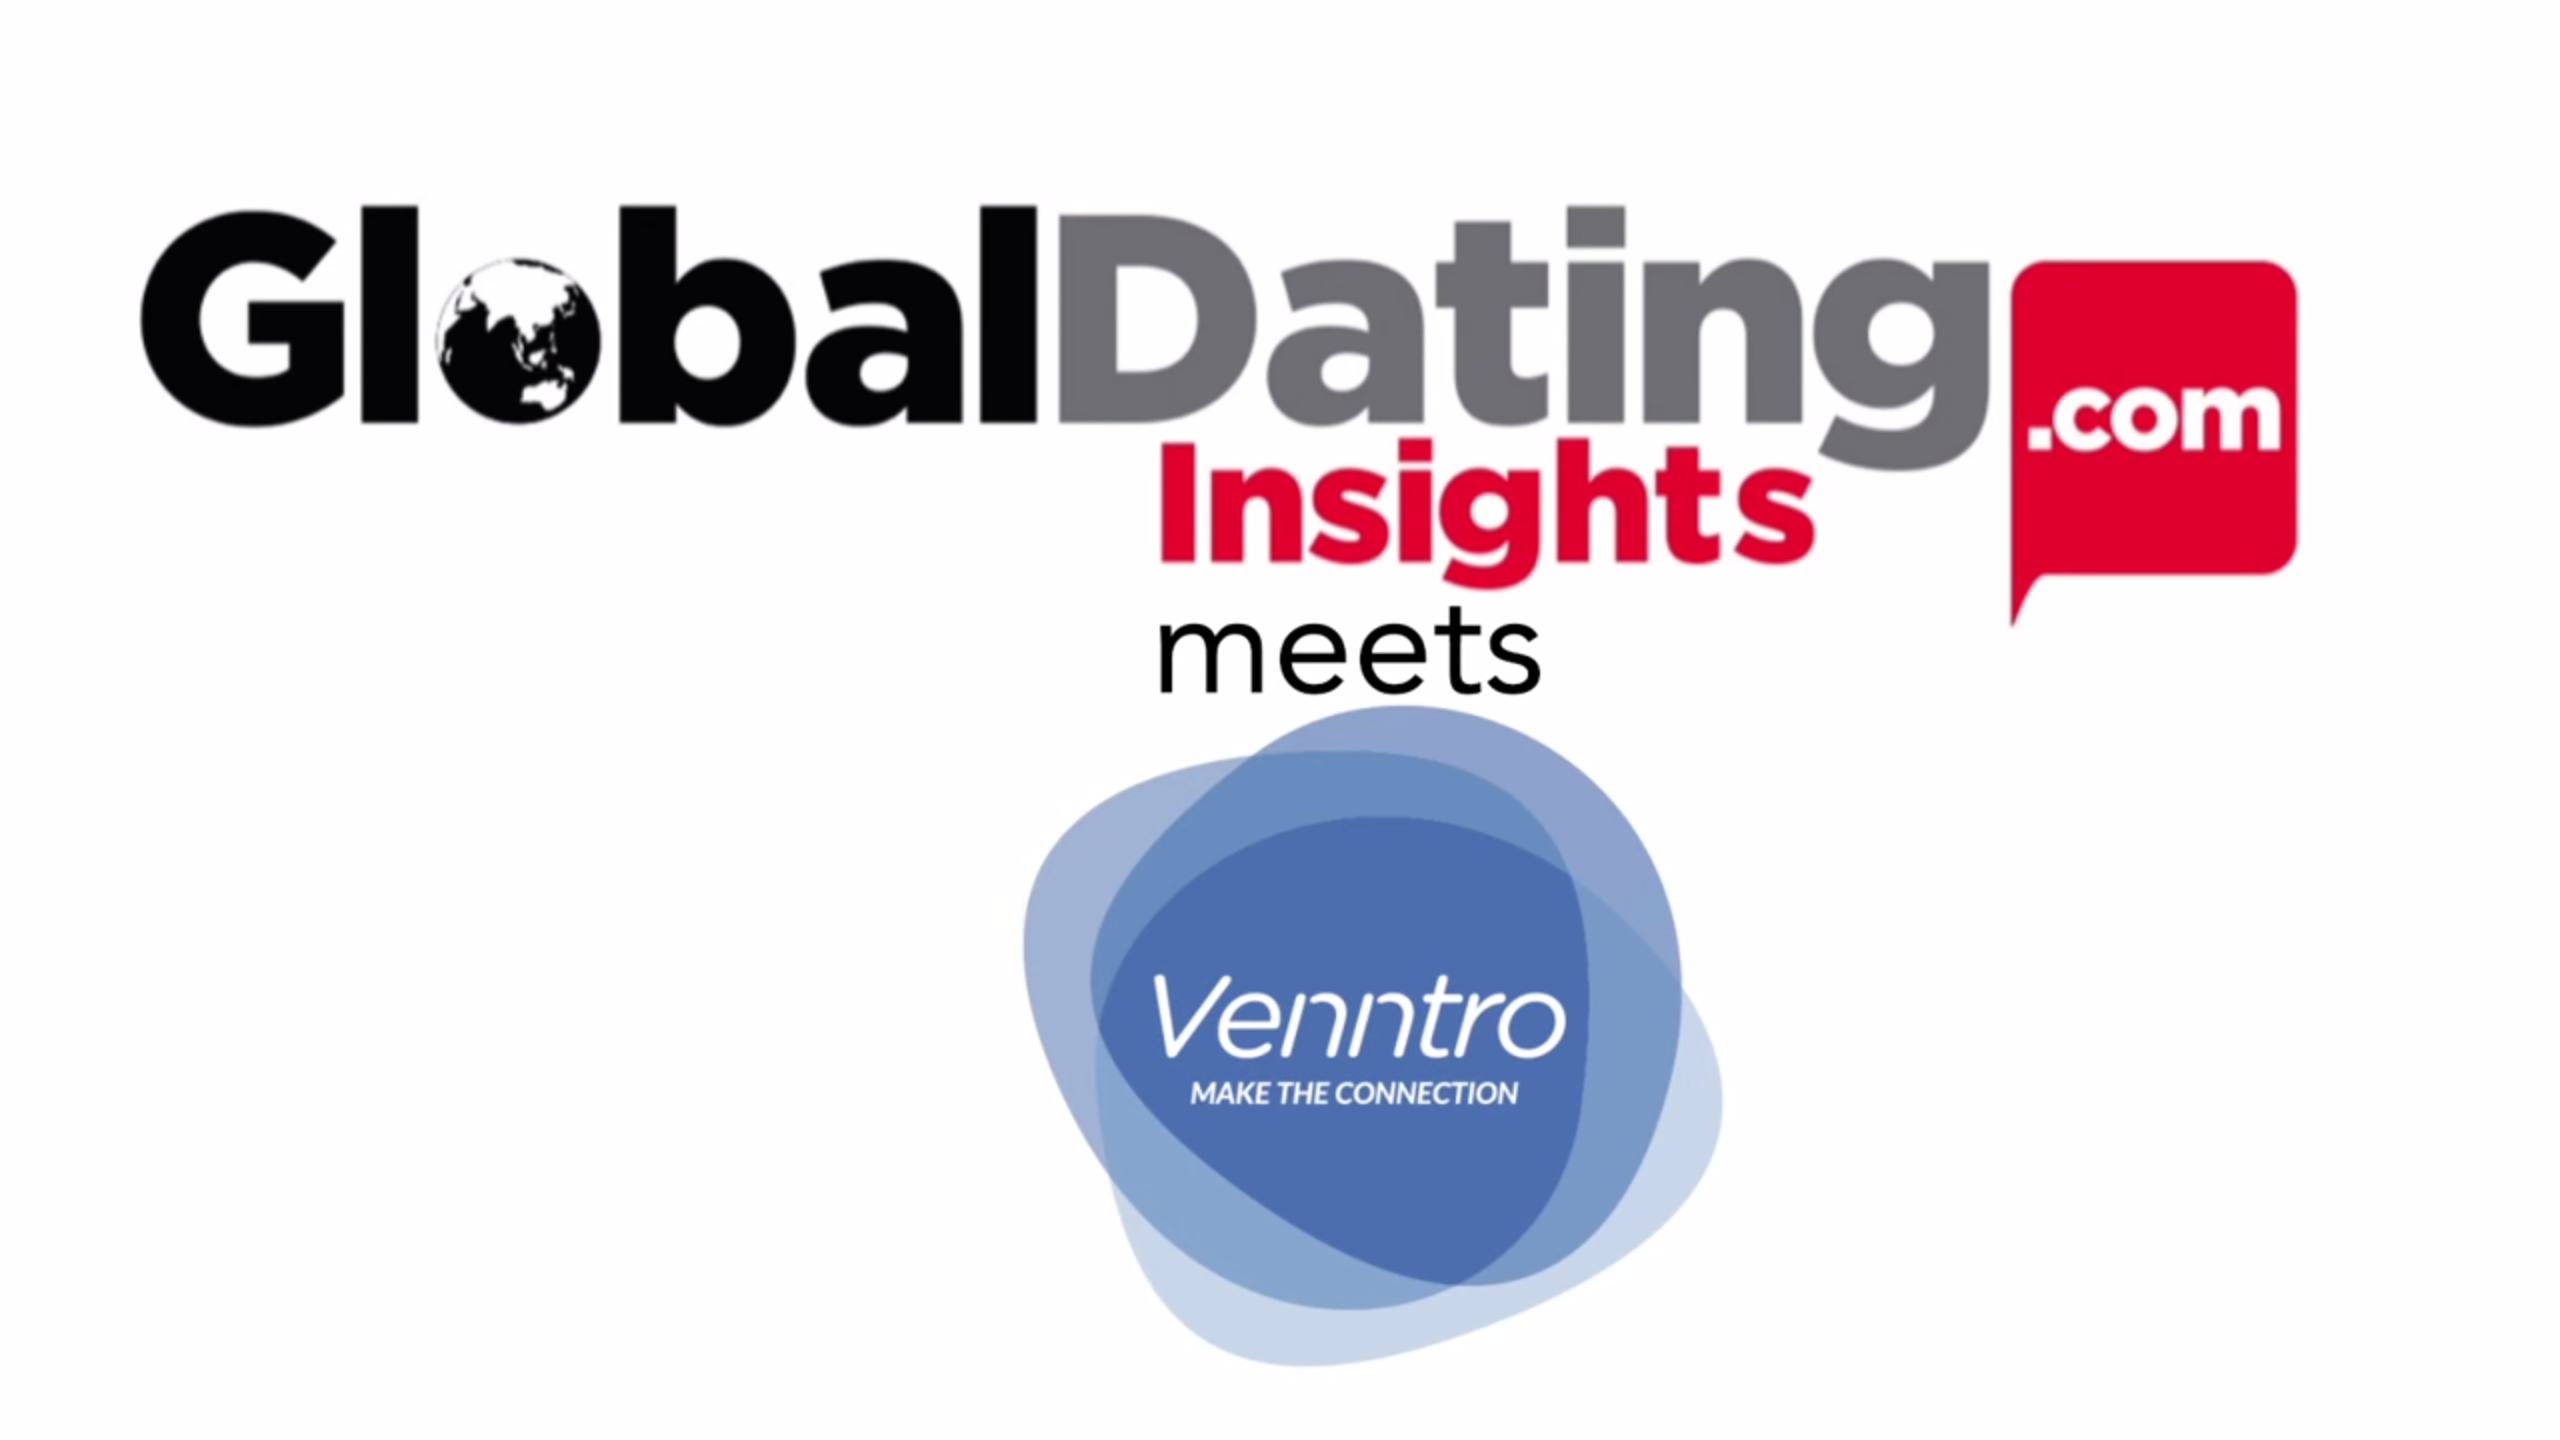 venntro dating sites